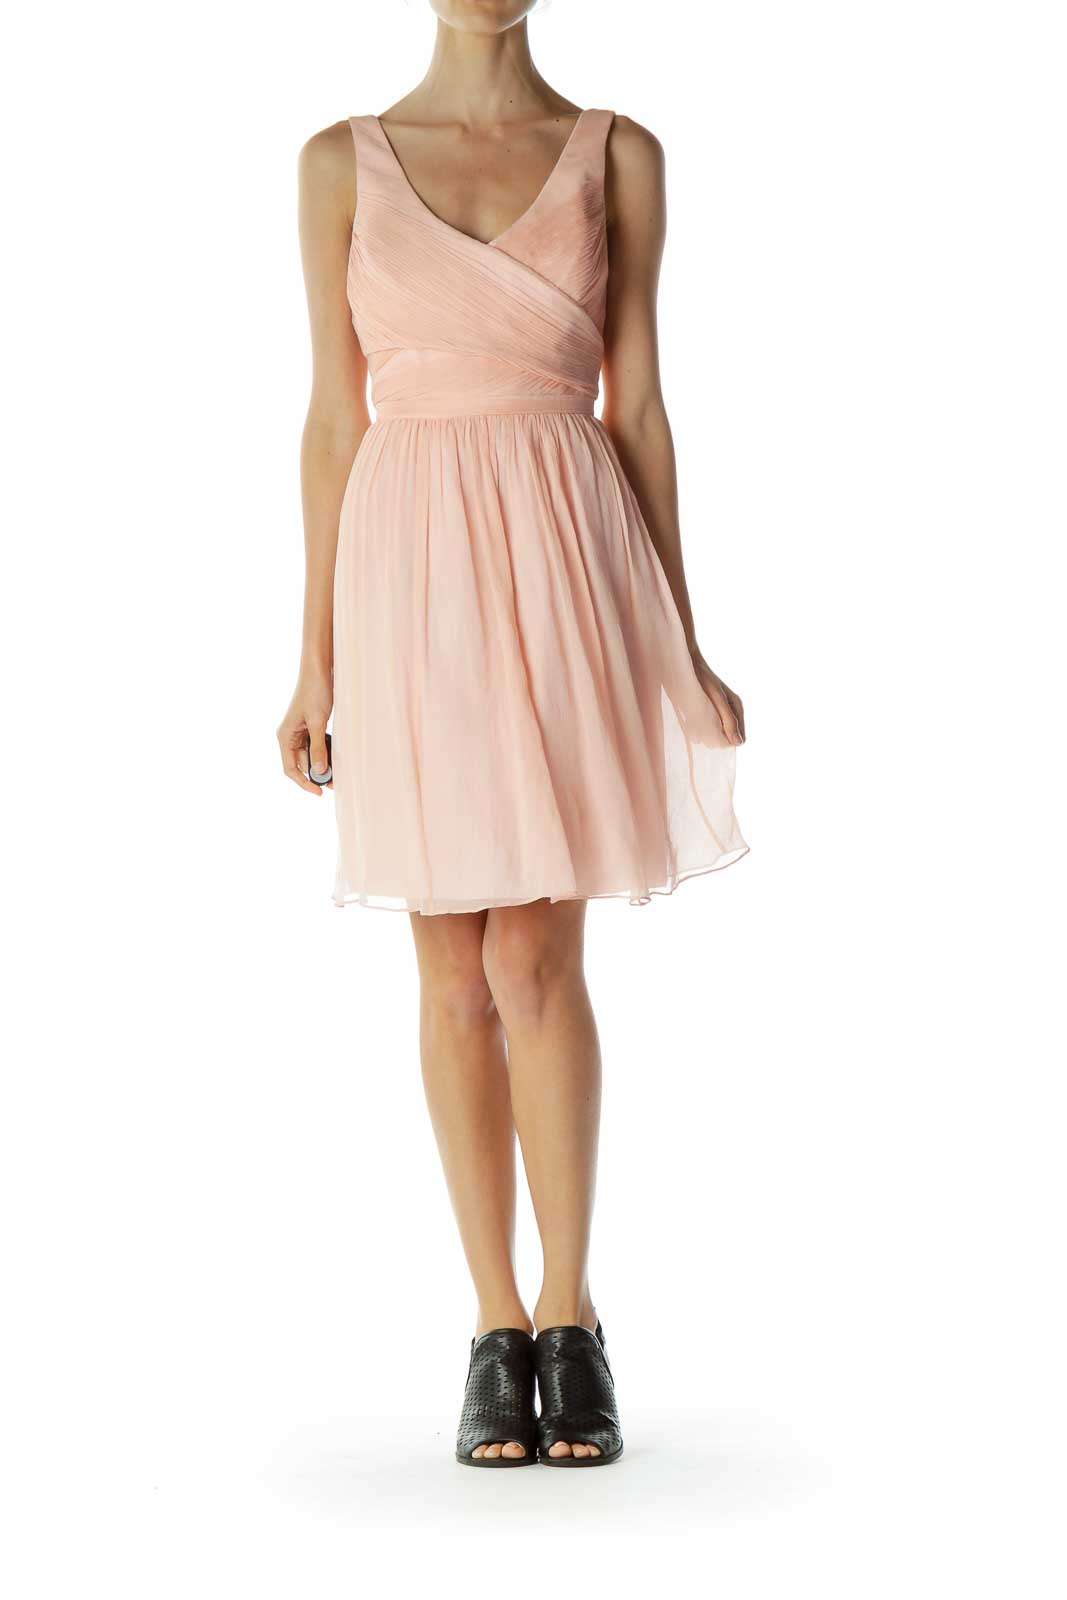 Pink Empire Waist Cocktail Dress